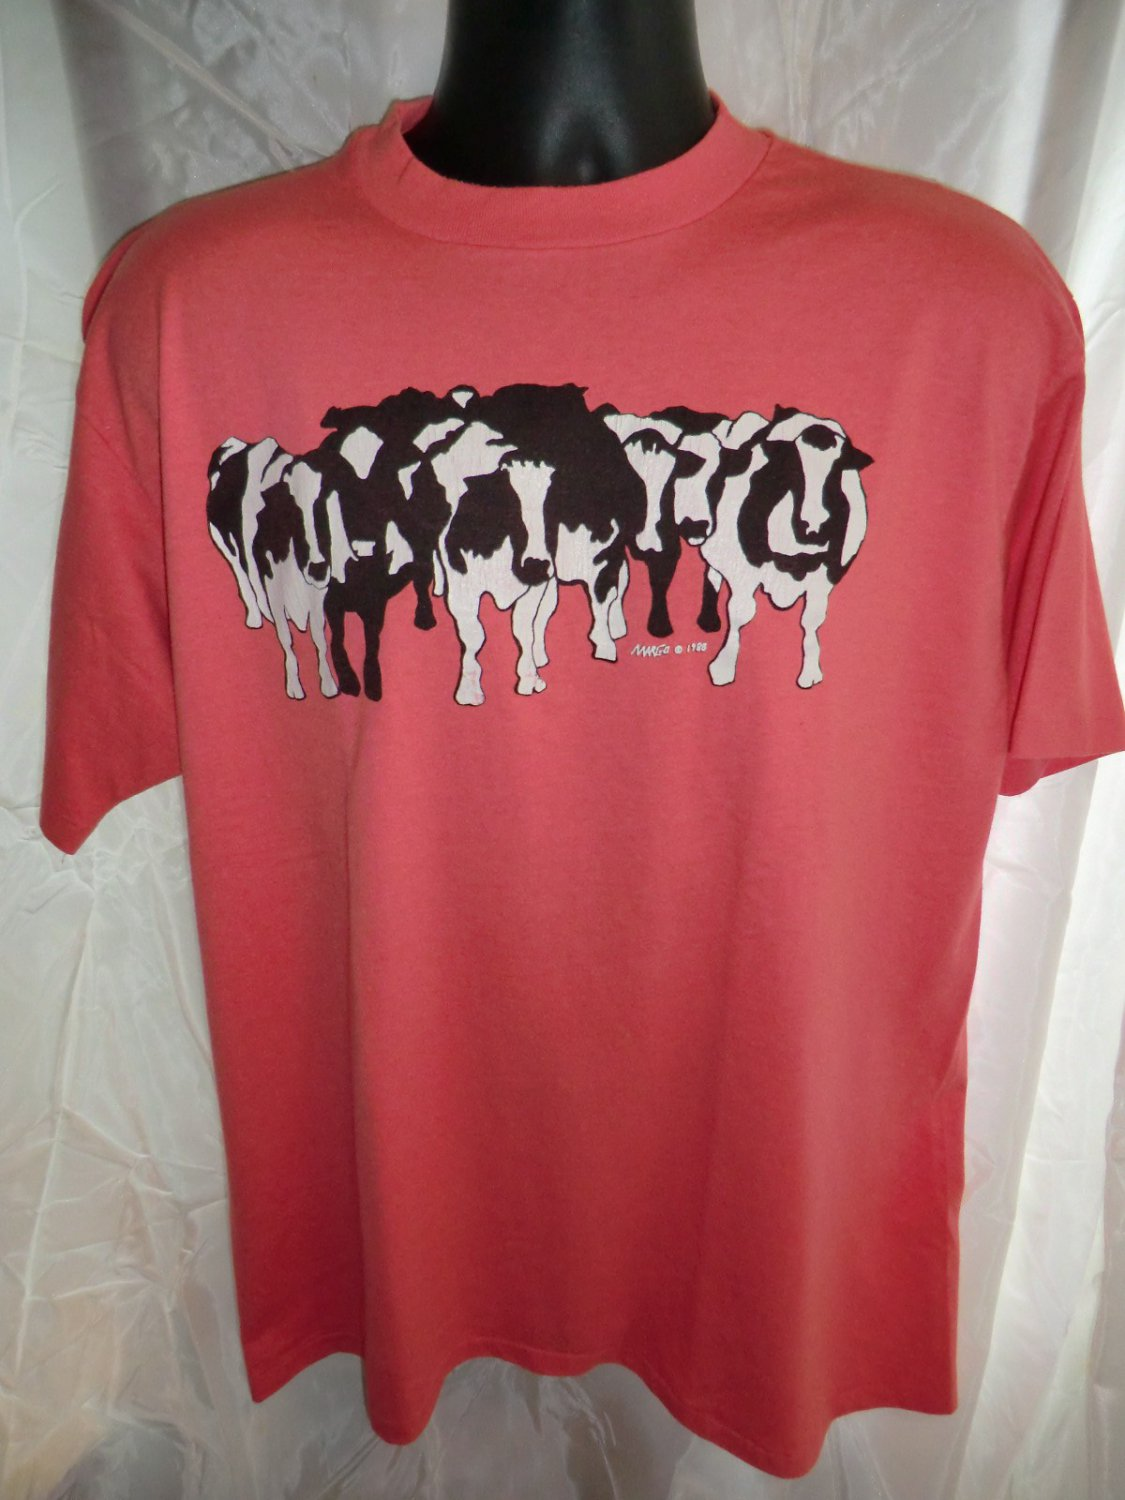 Rare Vintage 1988 Holstein Cows Cow Size Large/ XL T-Shirt